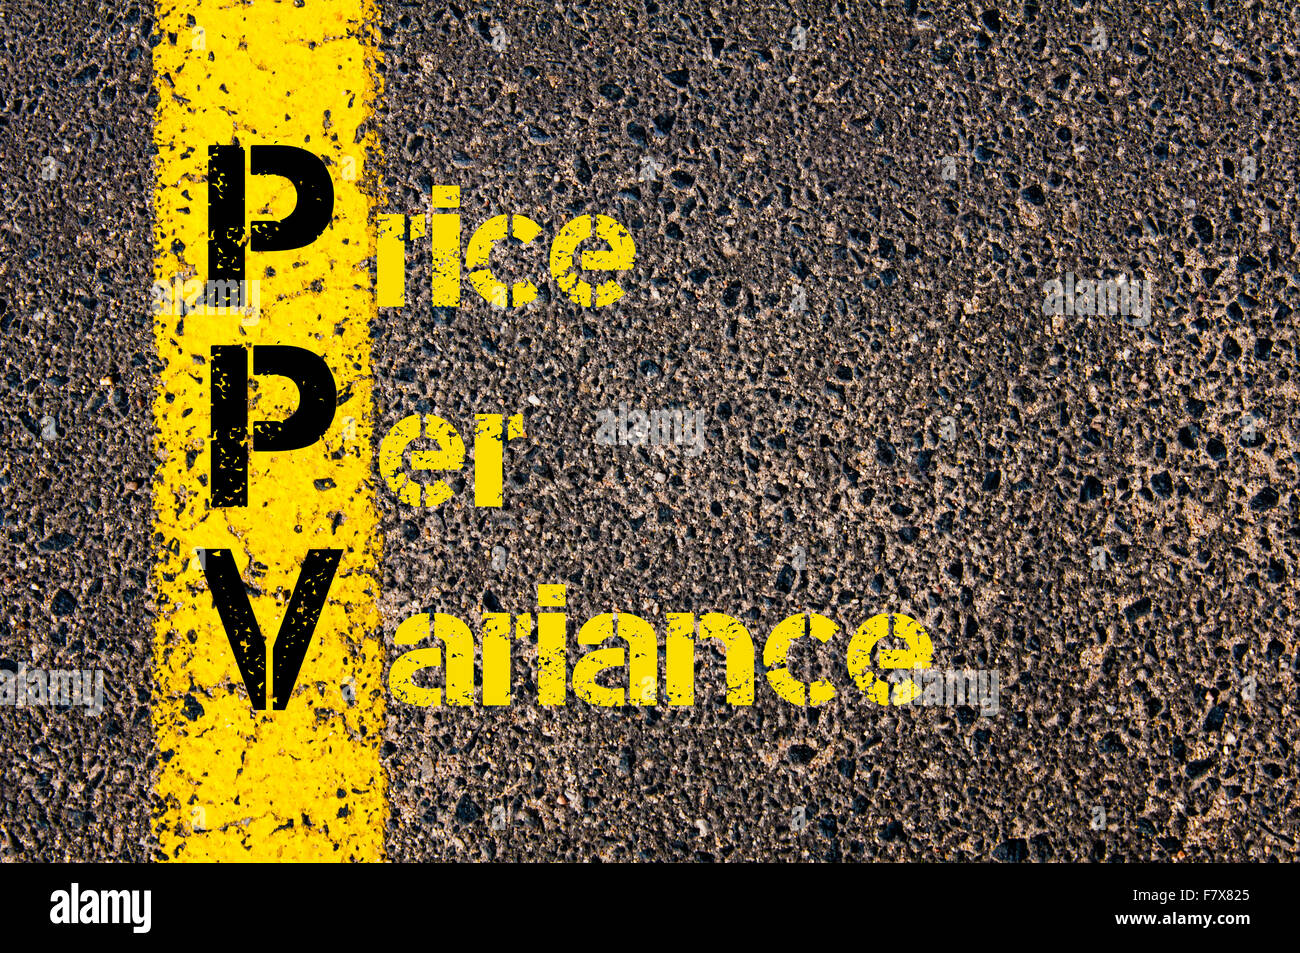 Concept image of Accounting Business Acronym PPV Price Per Variance written over road marking yellow paint line. - Stock Image